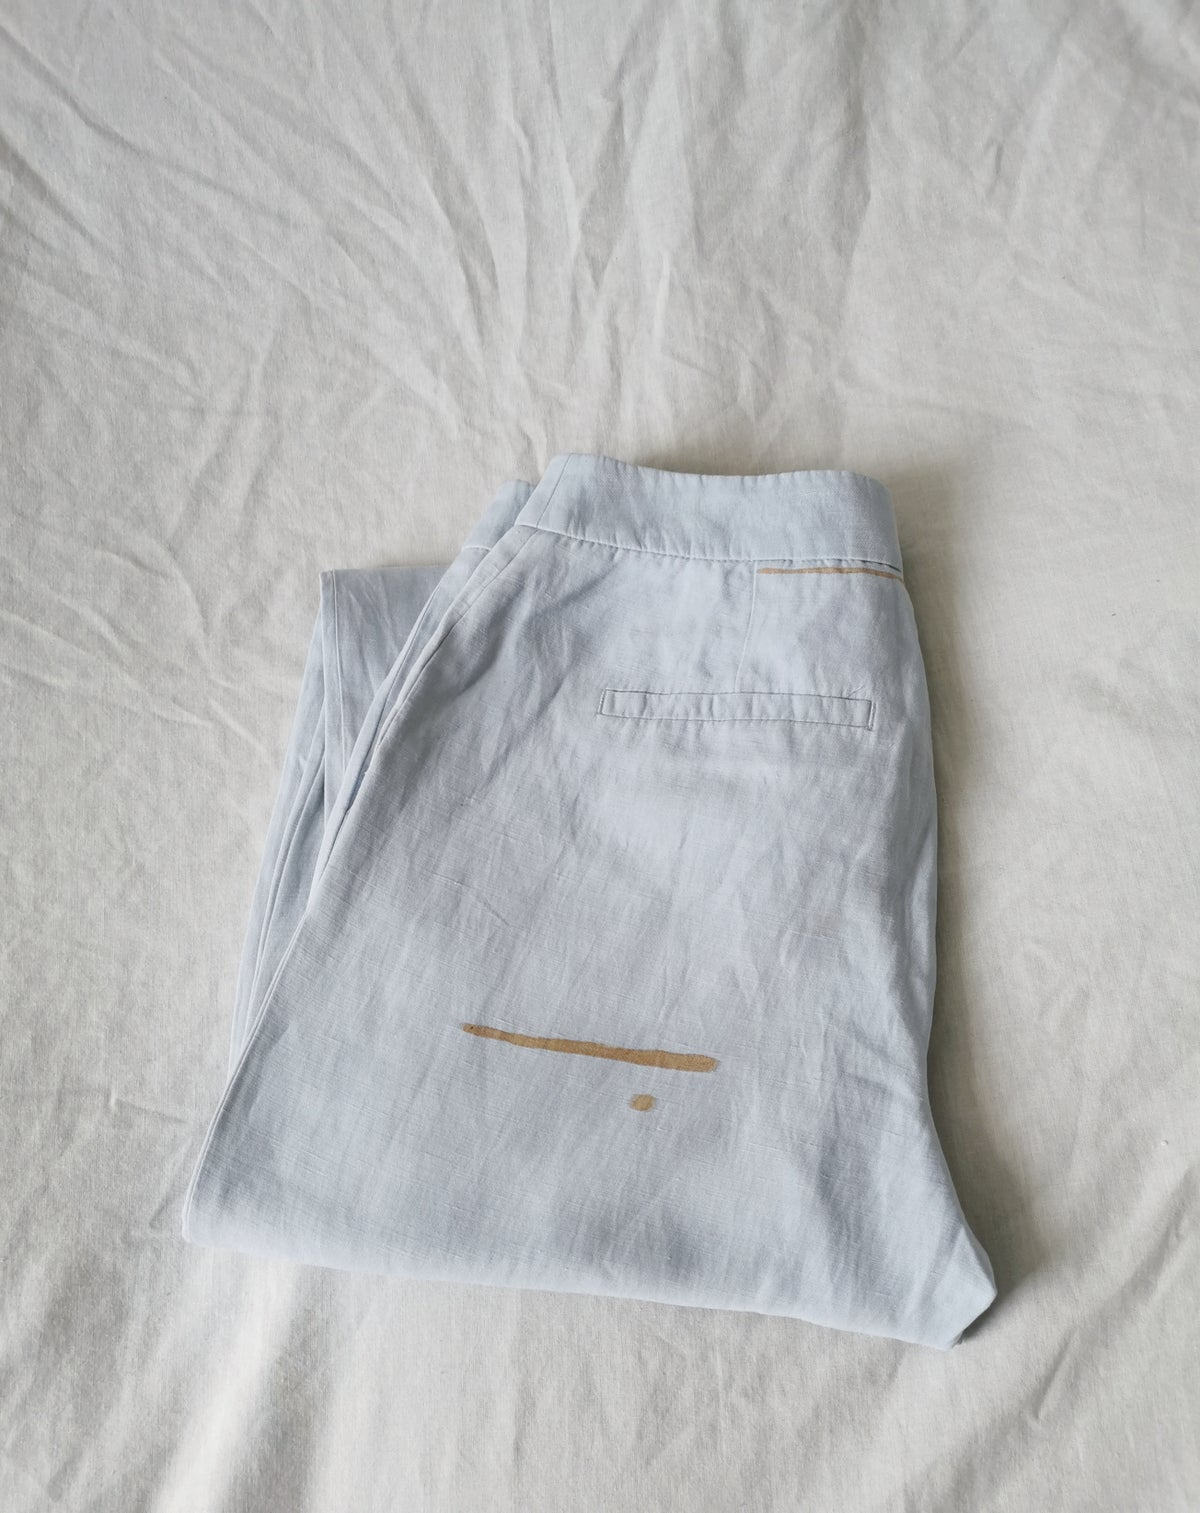 Image of baybee trousers